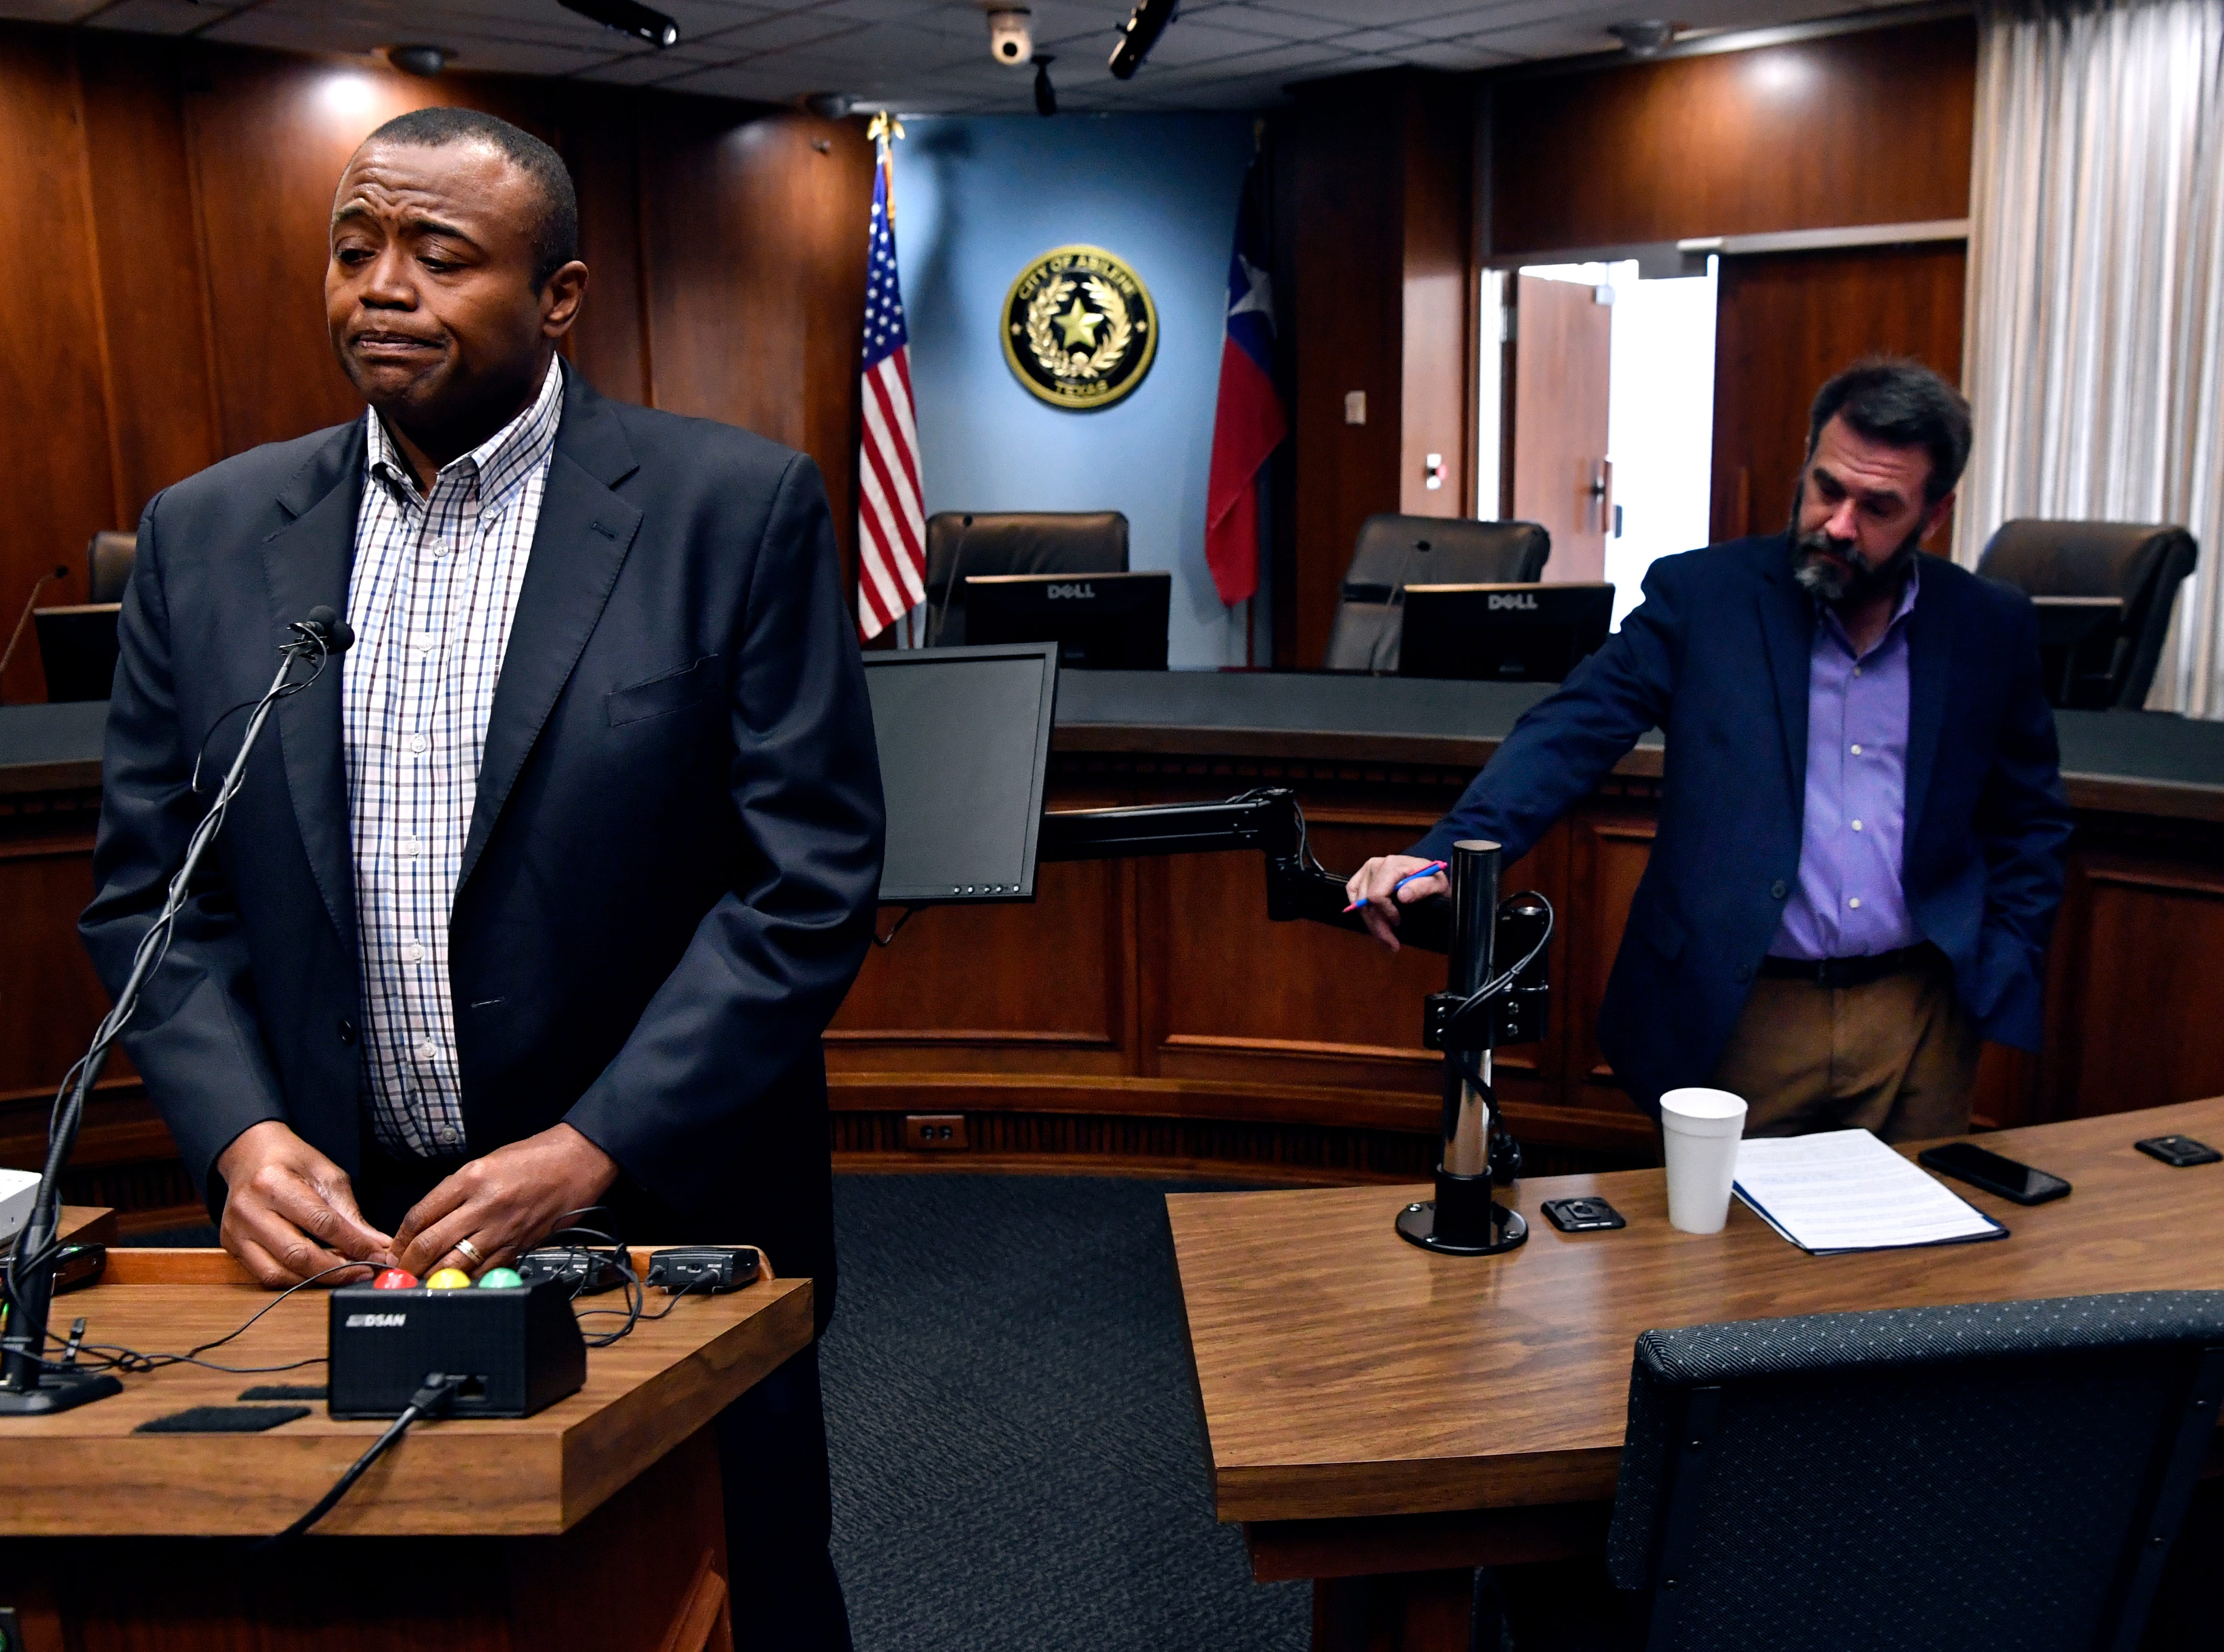 Abilene Mayor Anthony Williams addresses media Wednesday  as Councilman Kyle McAlister waits behind him. McAlister has been accused of racism based on passed social media postings which he characterized as poor attempts at humor. McAlister said he did not intend to step down but would vote for his own censure.